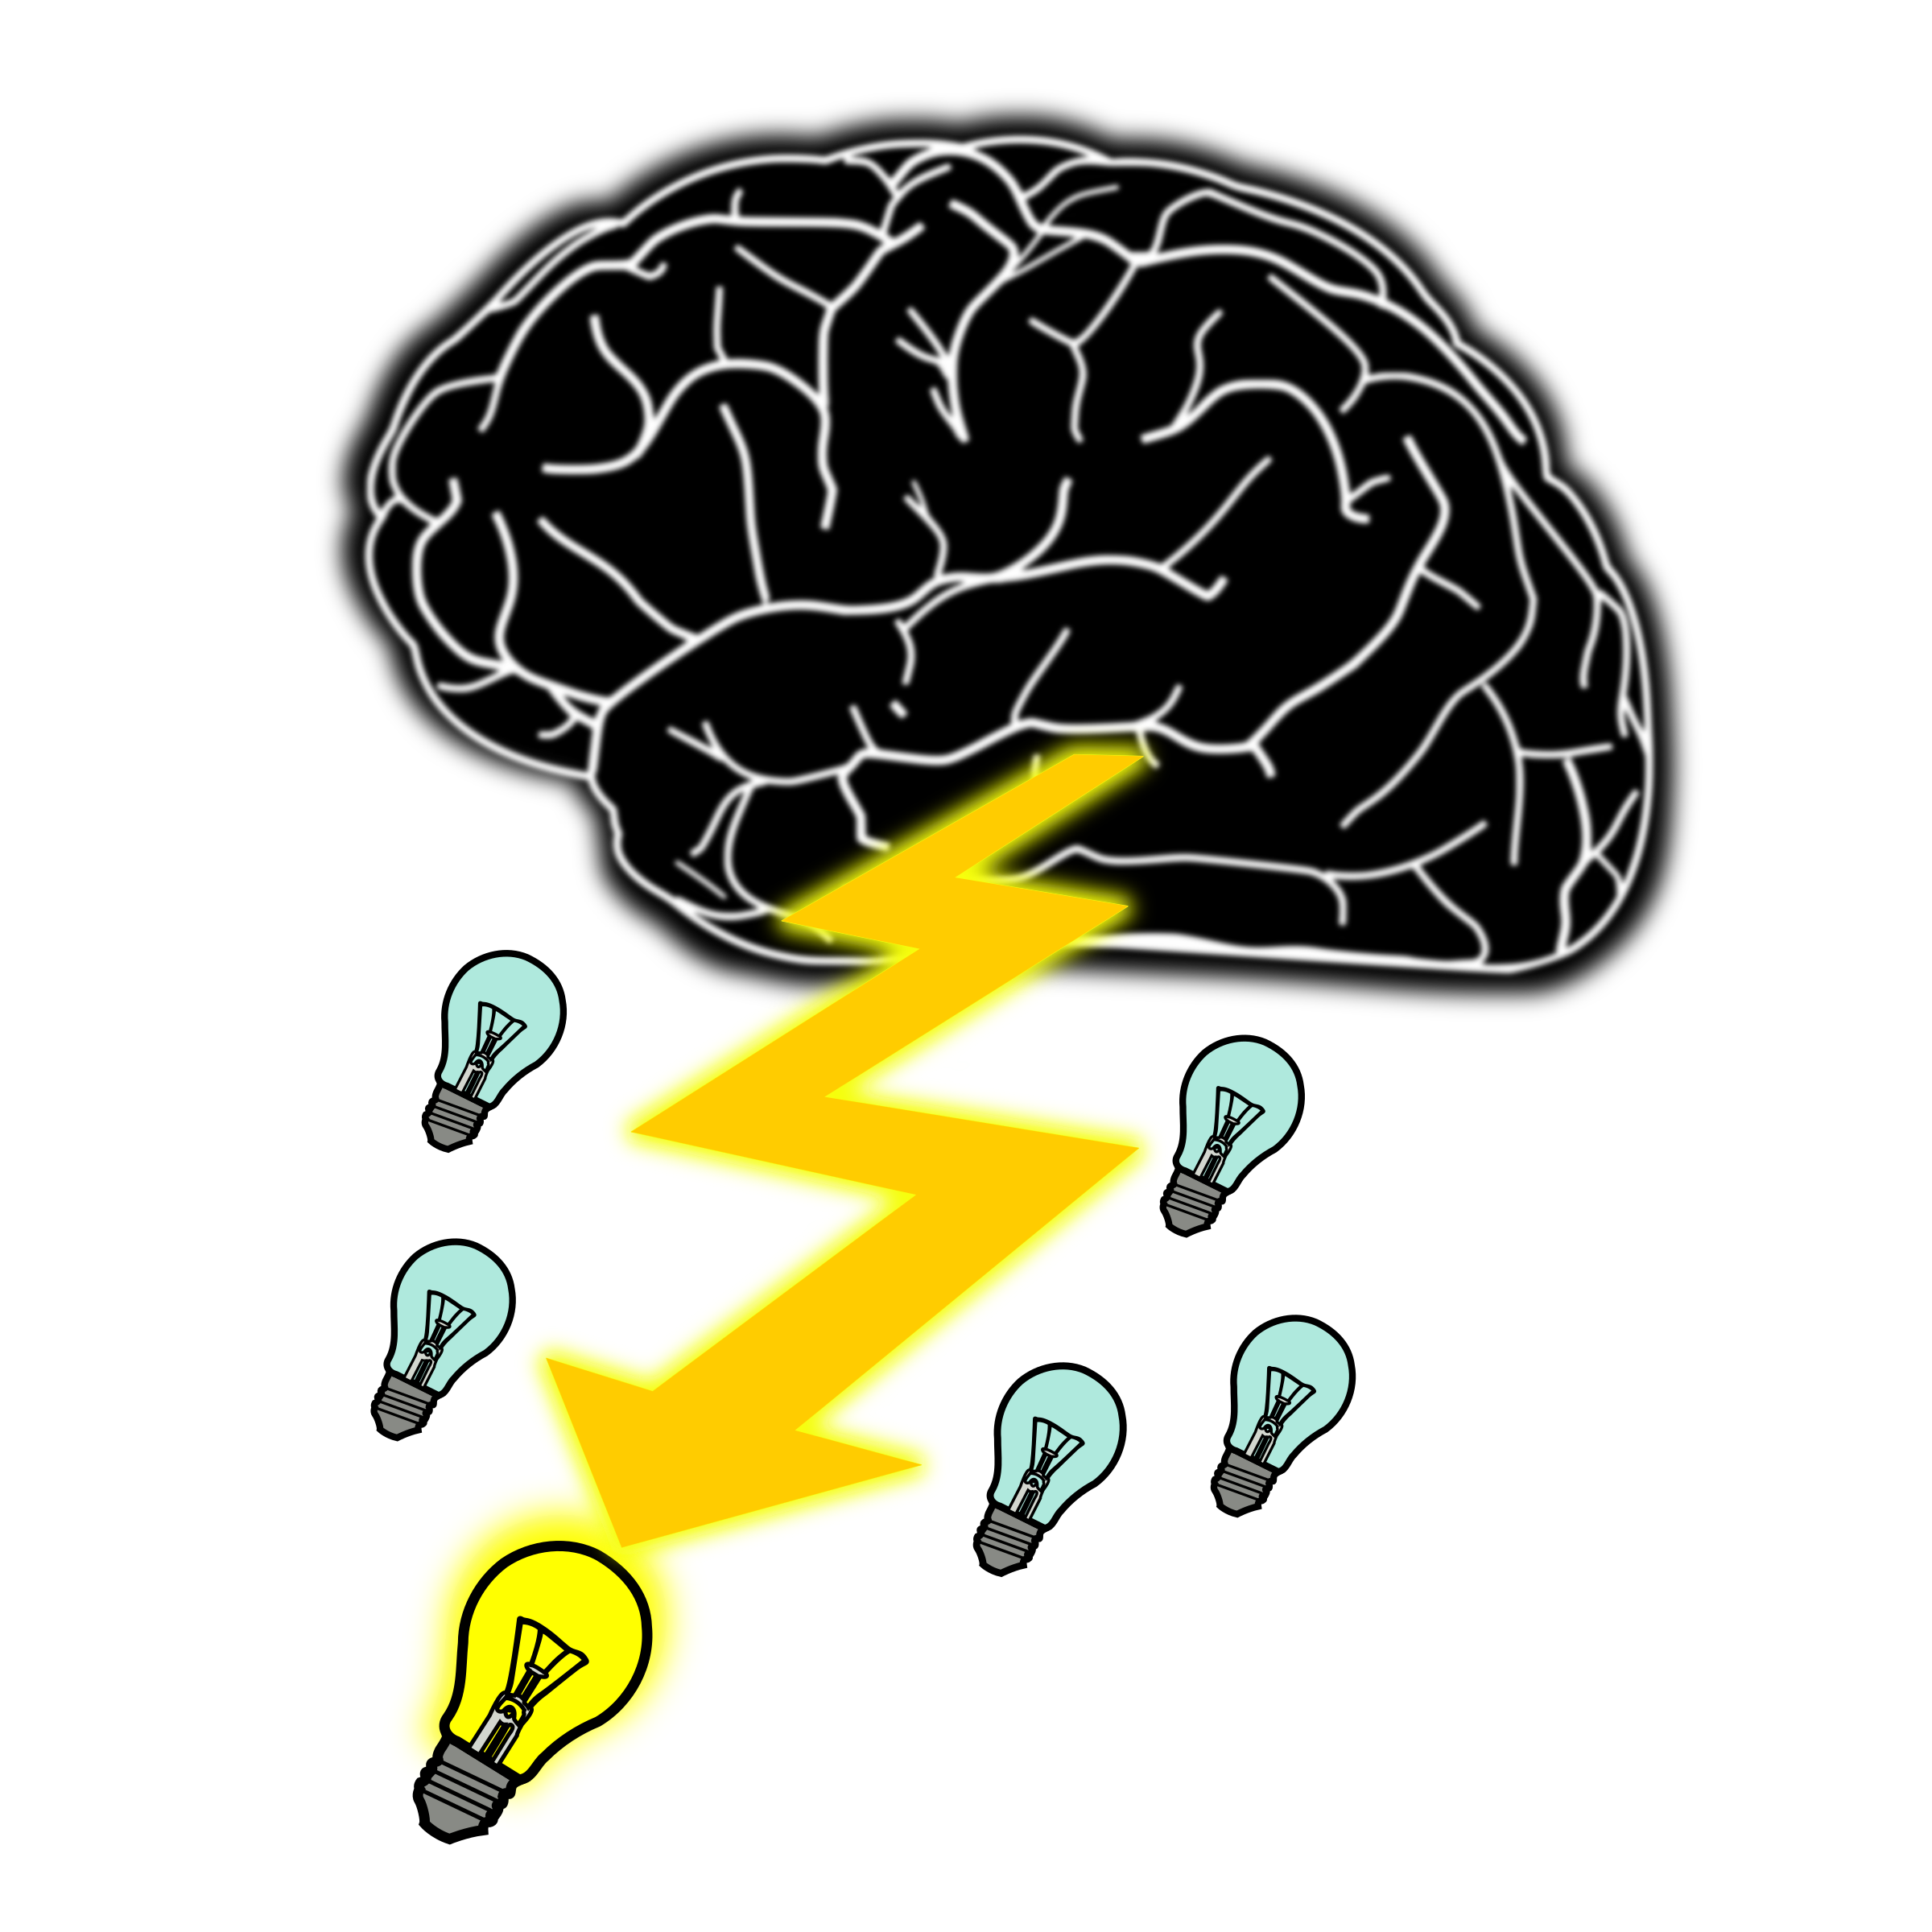 Brainstorming icon symbol sign. Thoughts clipart brain storm